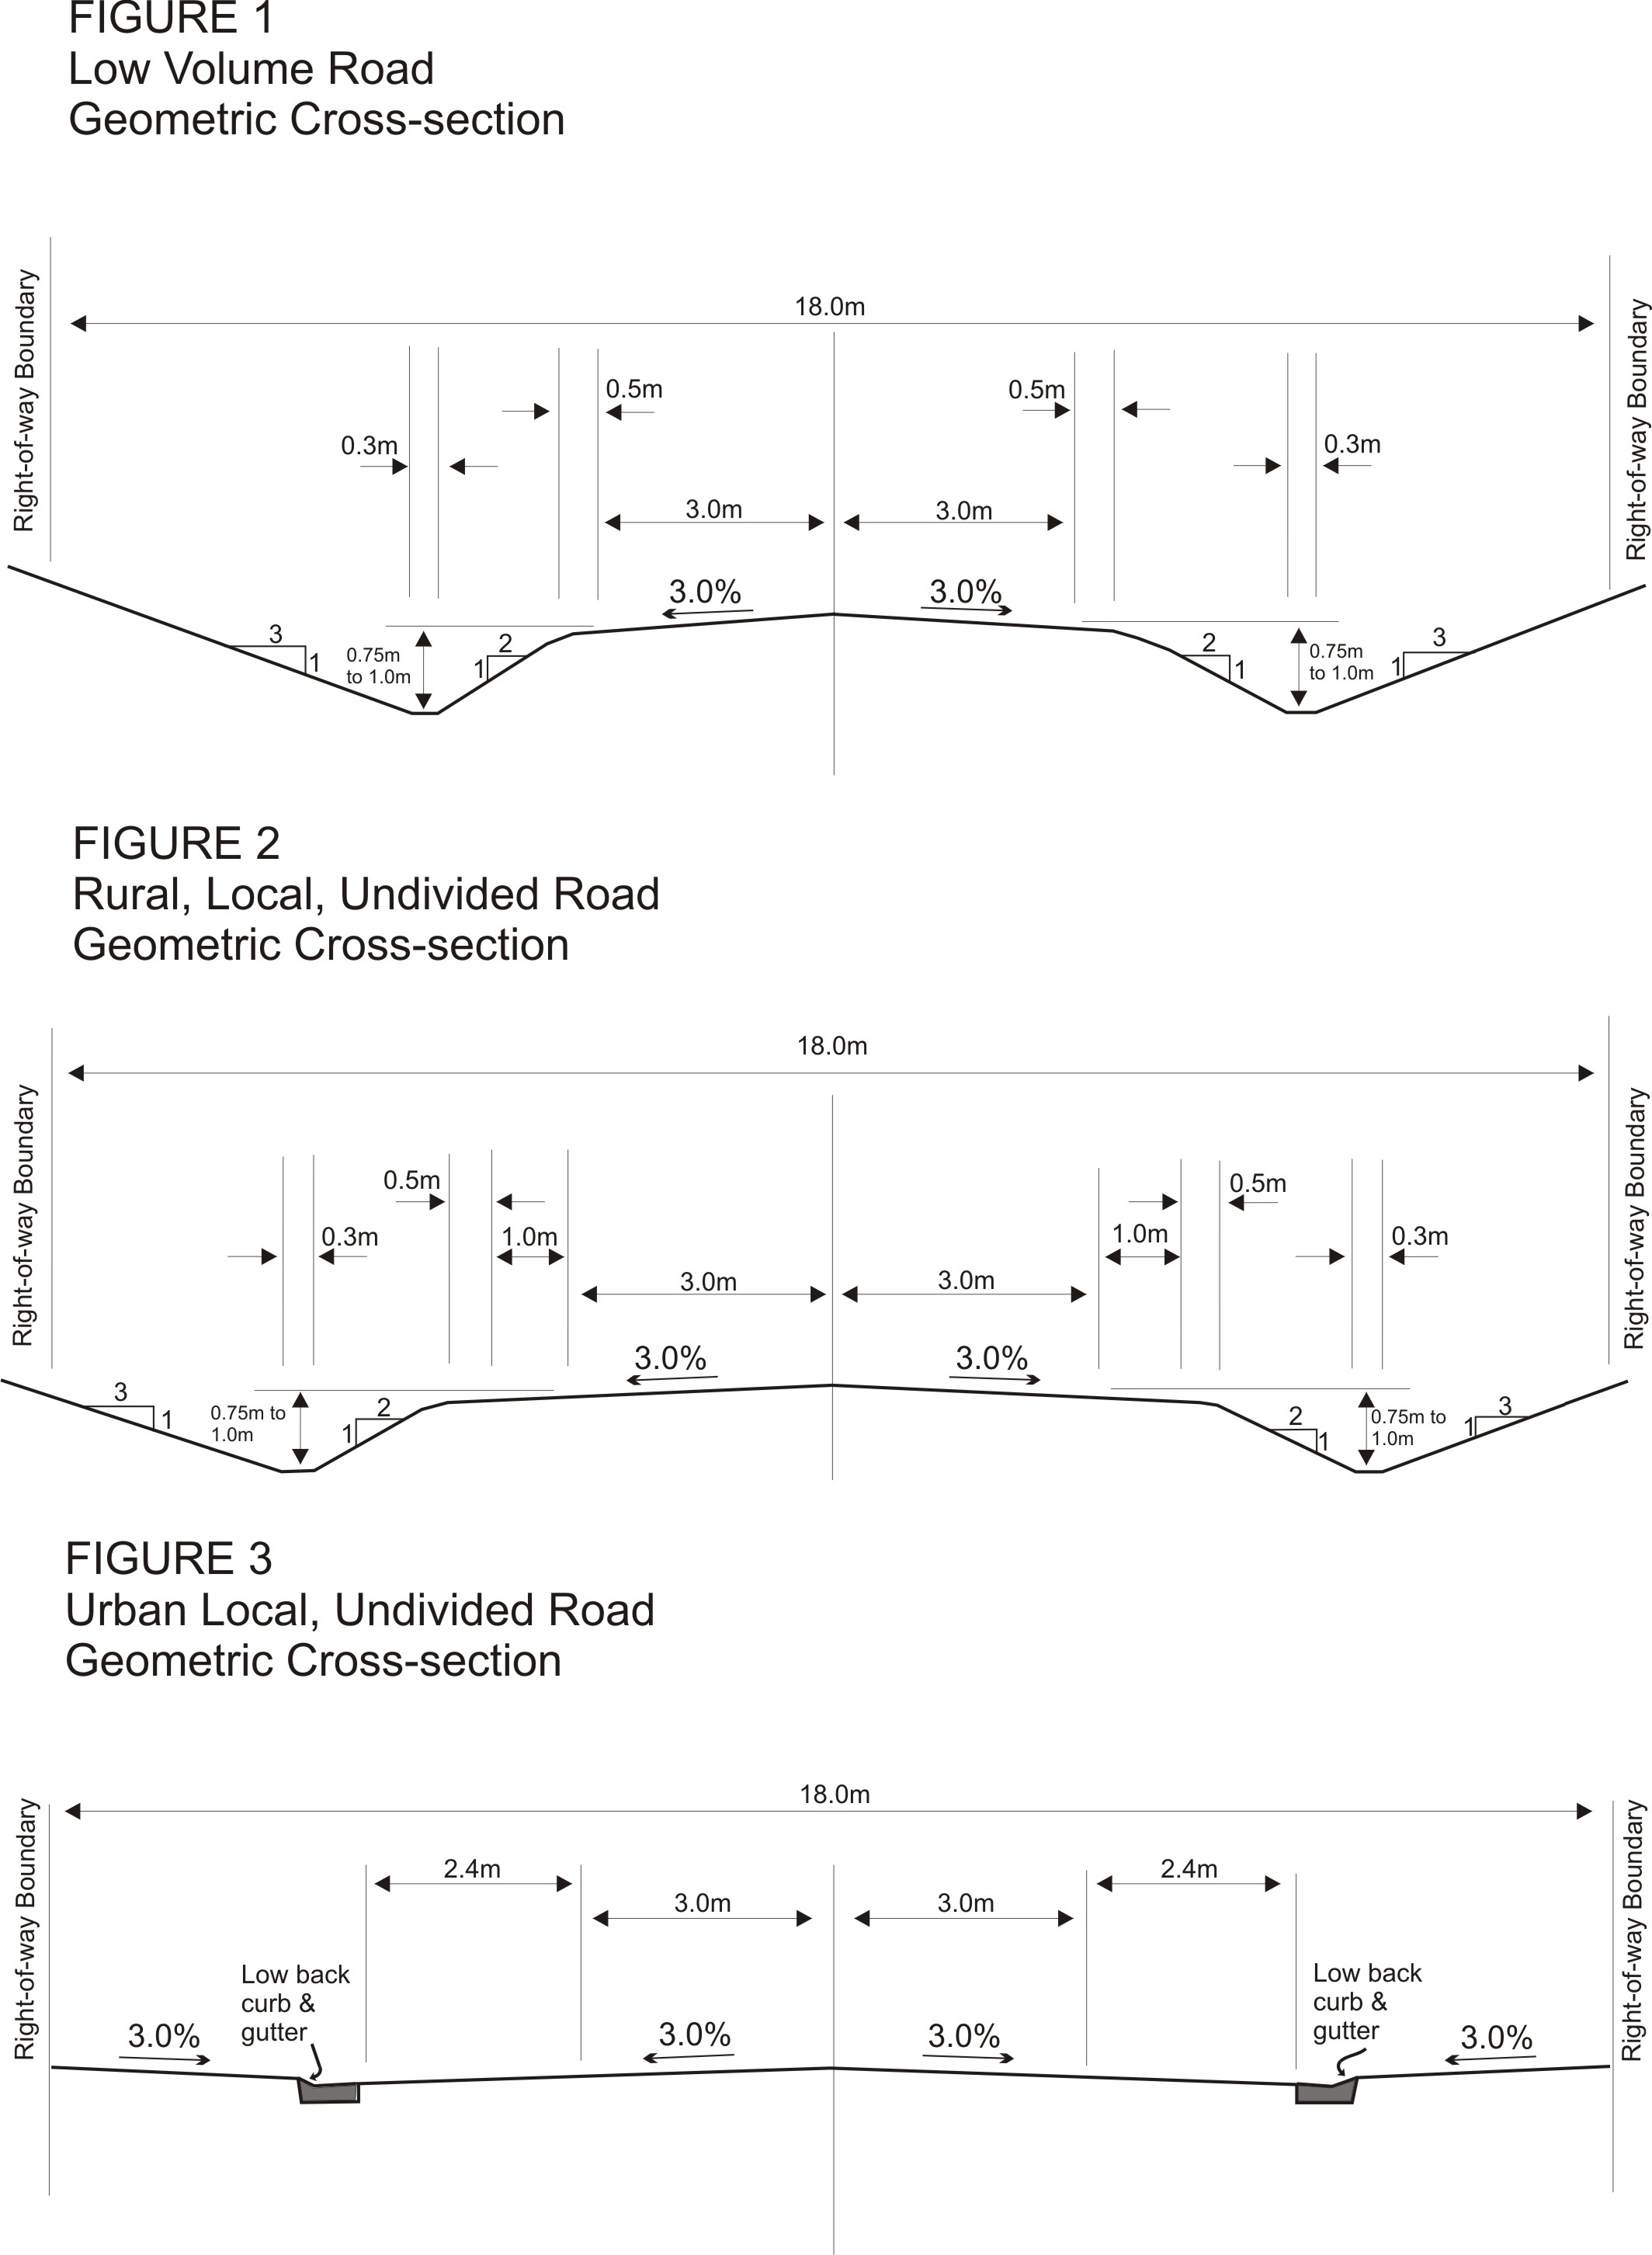 road standards_cross-sections fig 1-3